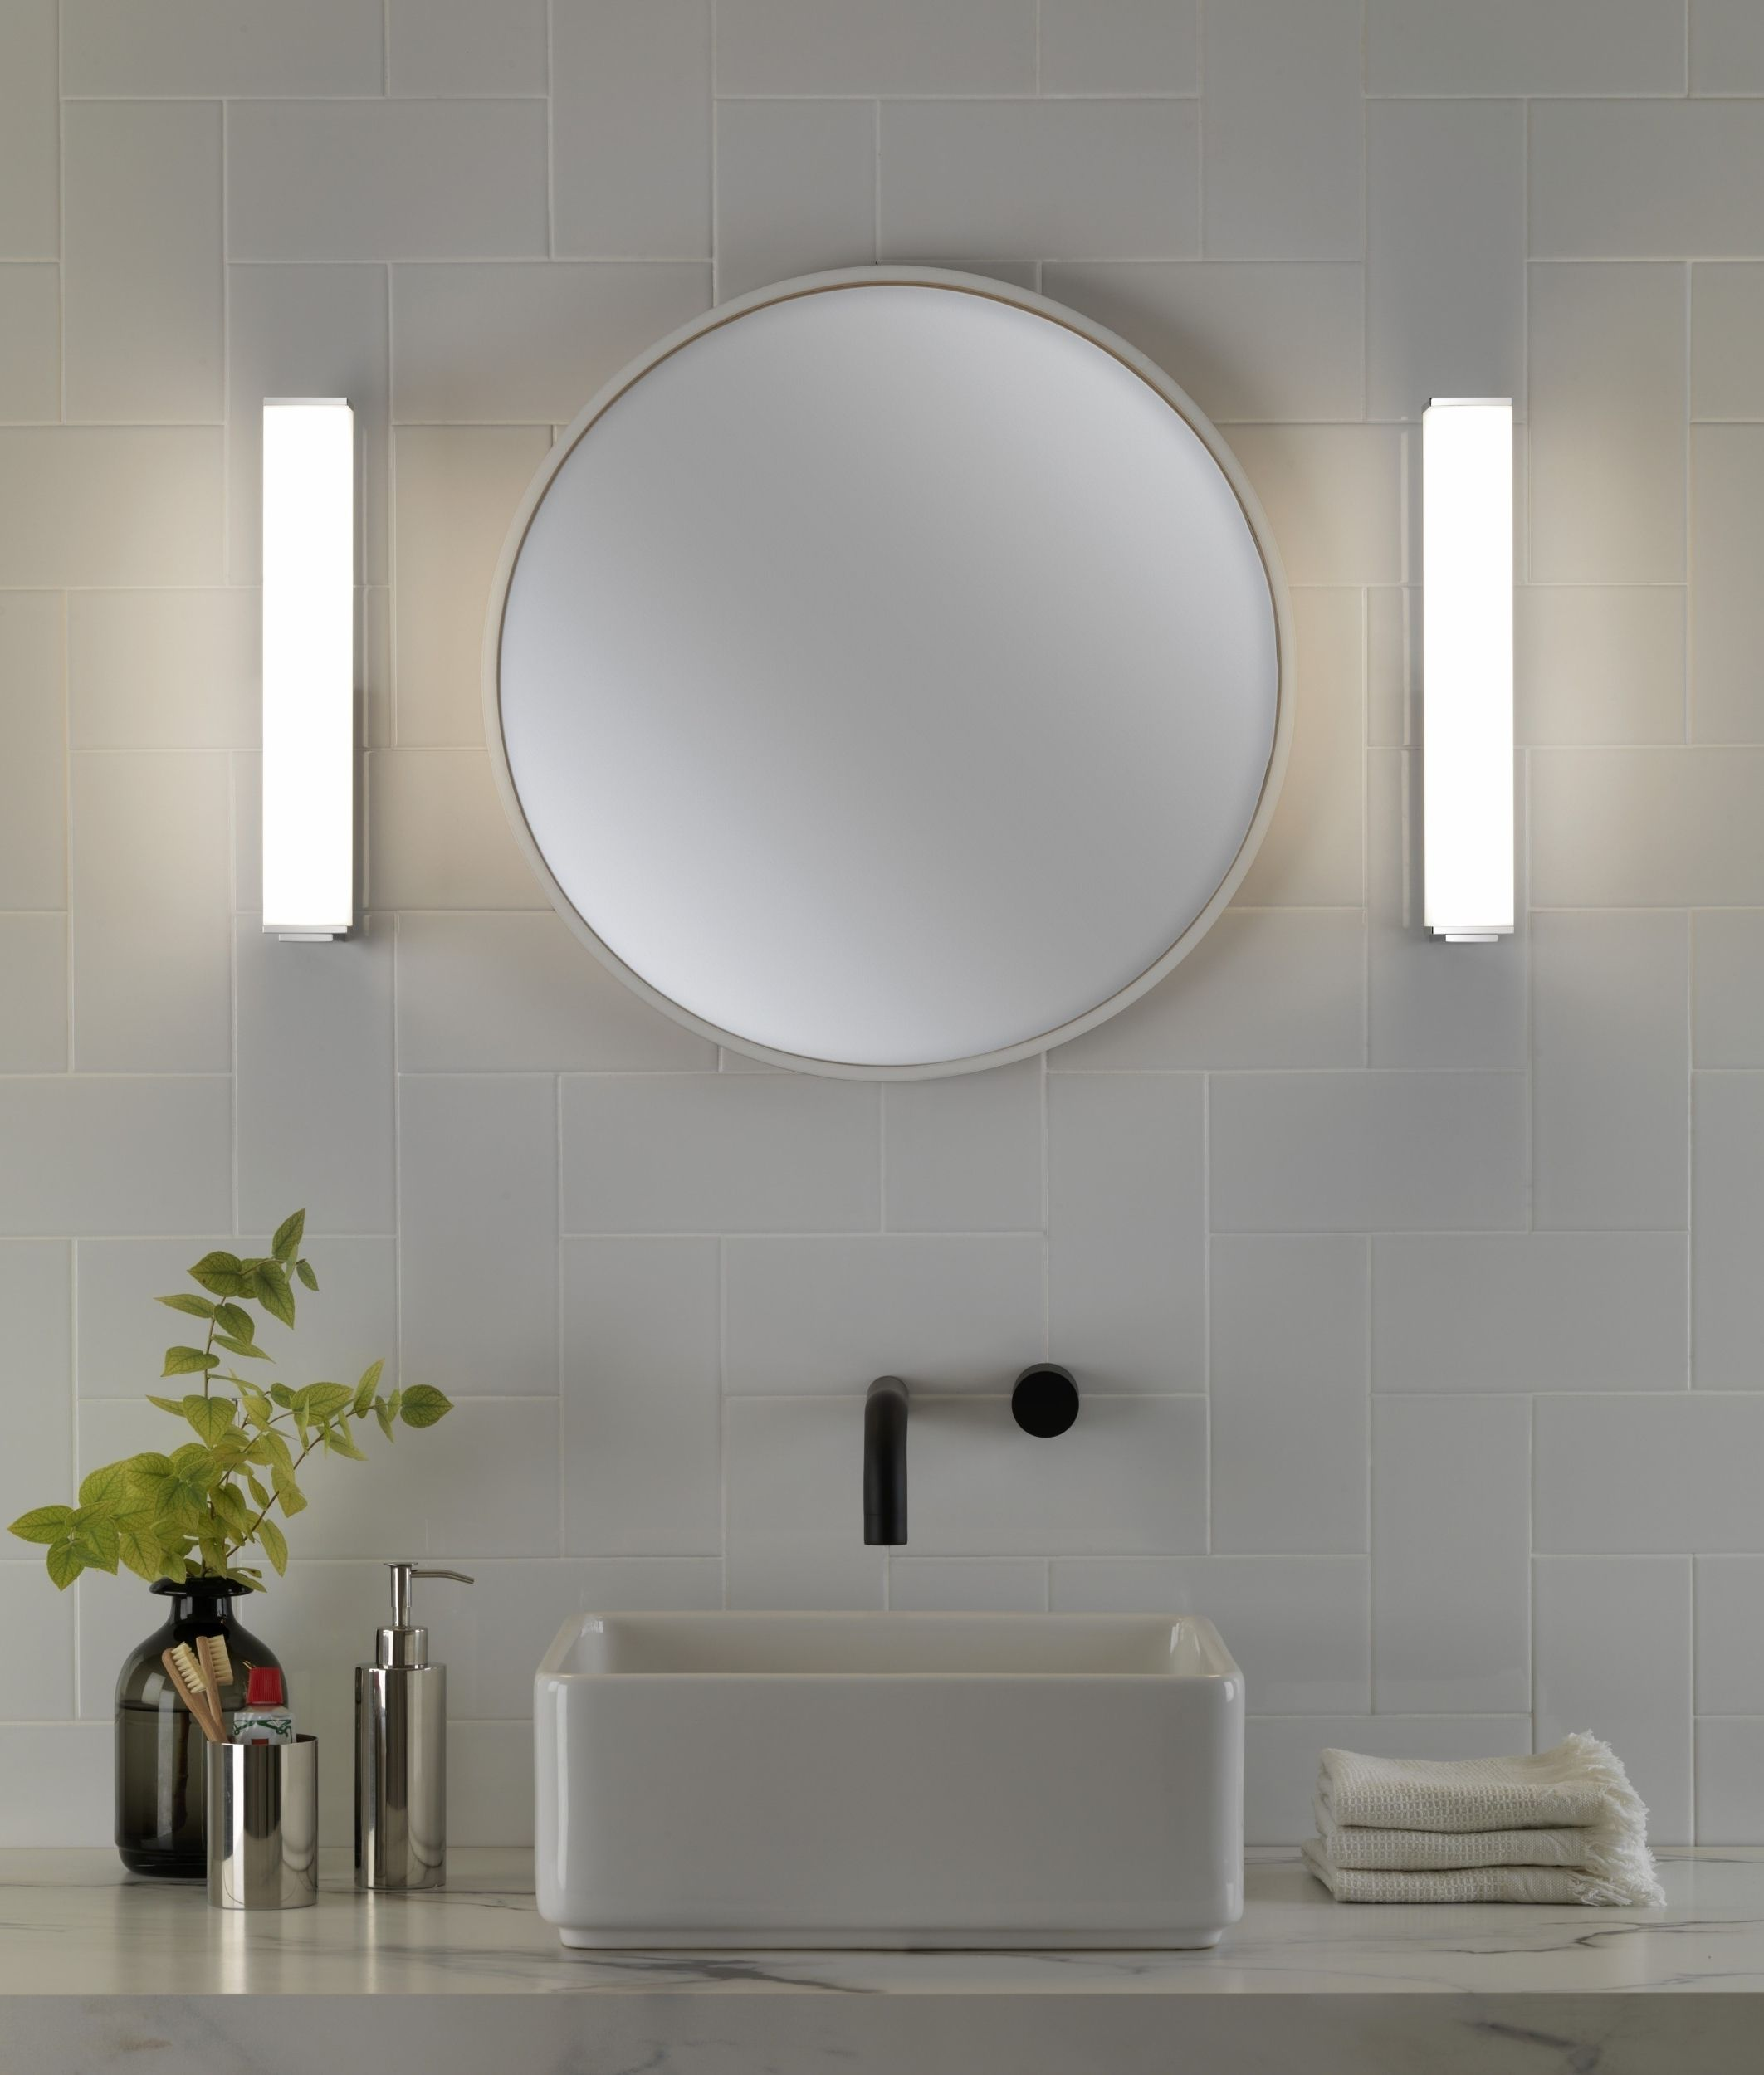 Glass Walls Bathroom - Rectangular chrome and opal glass wall light ip44 rated for bathroom use